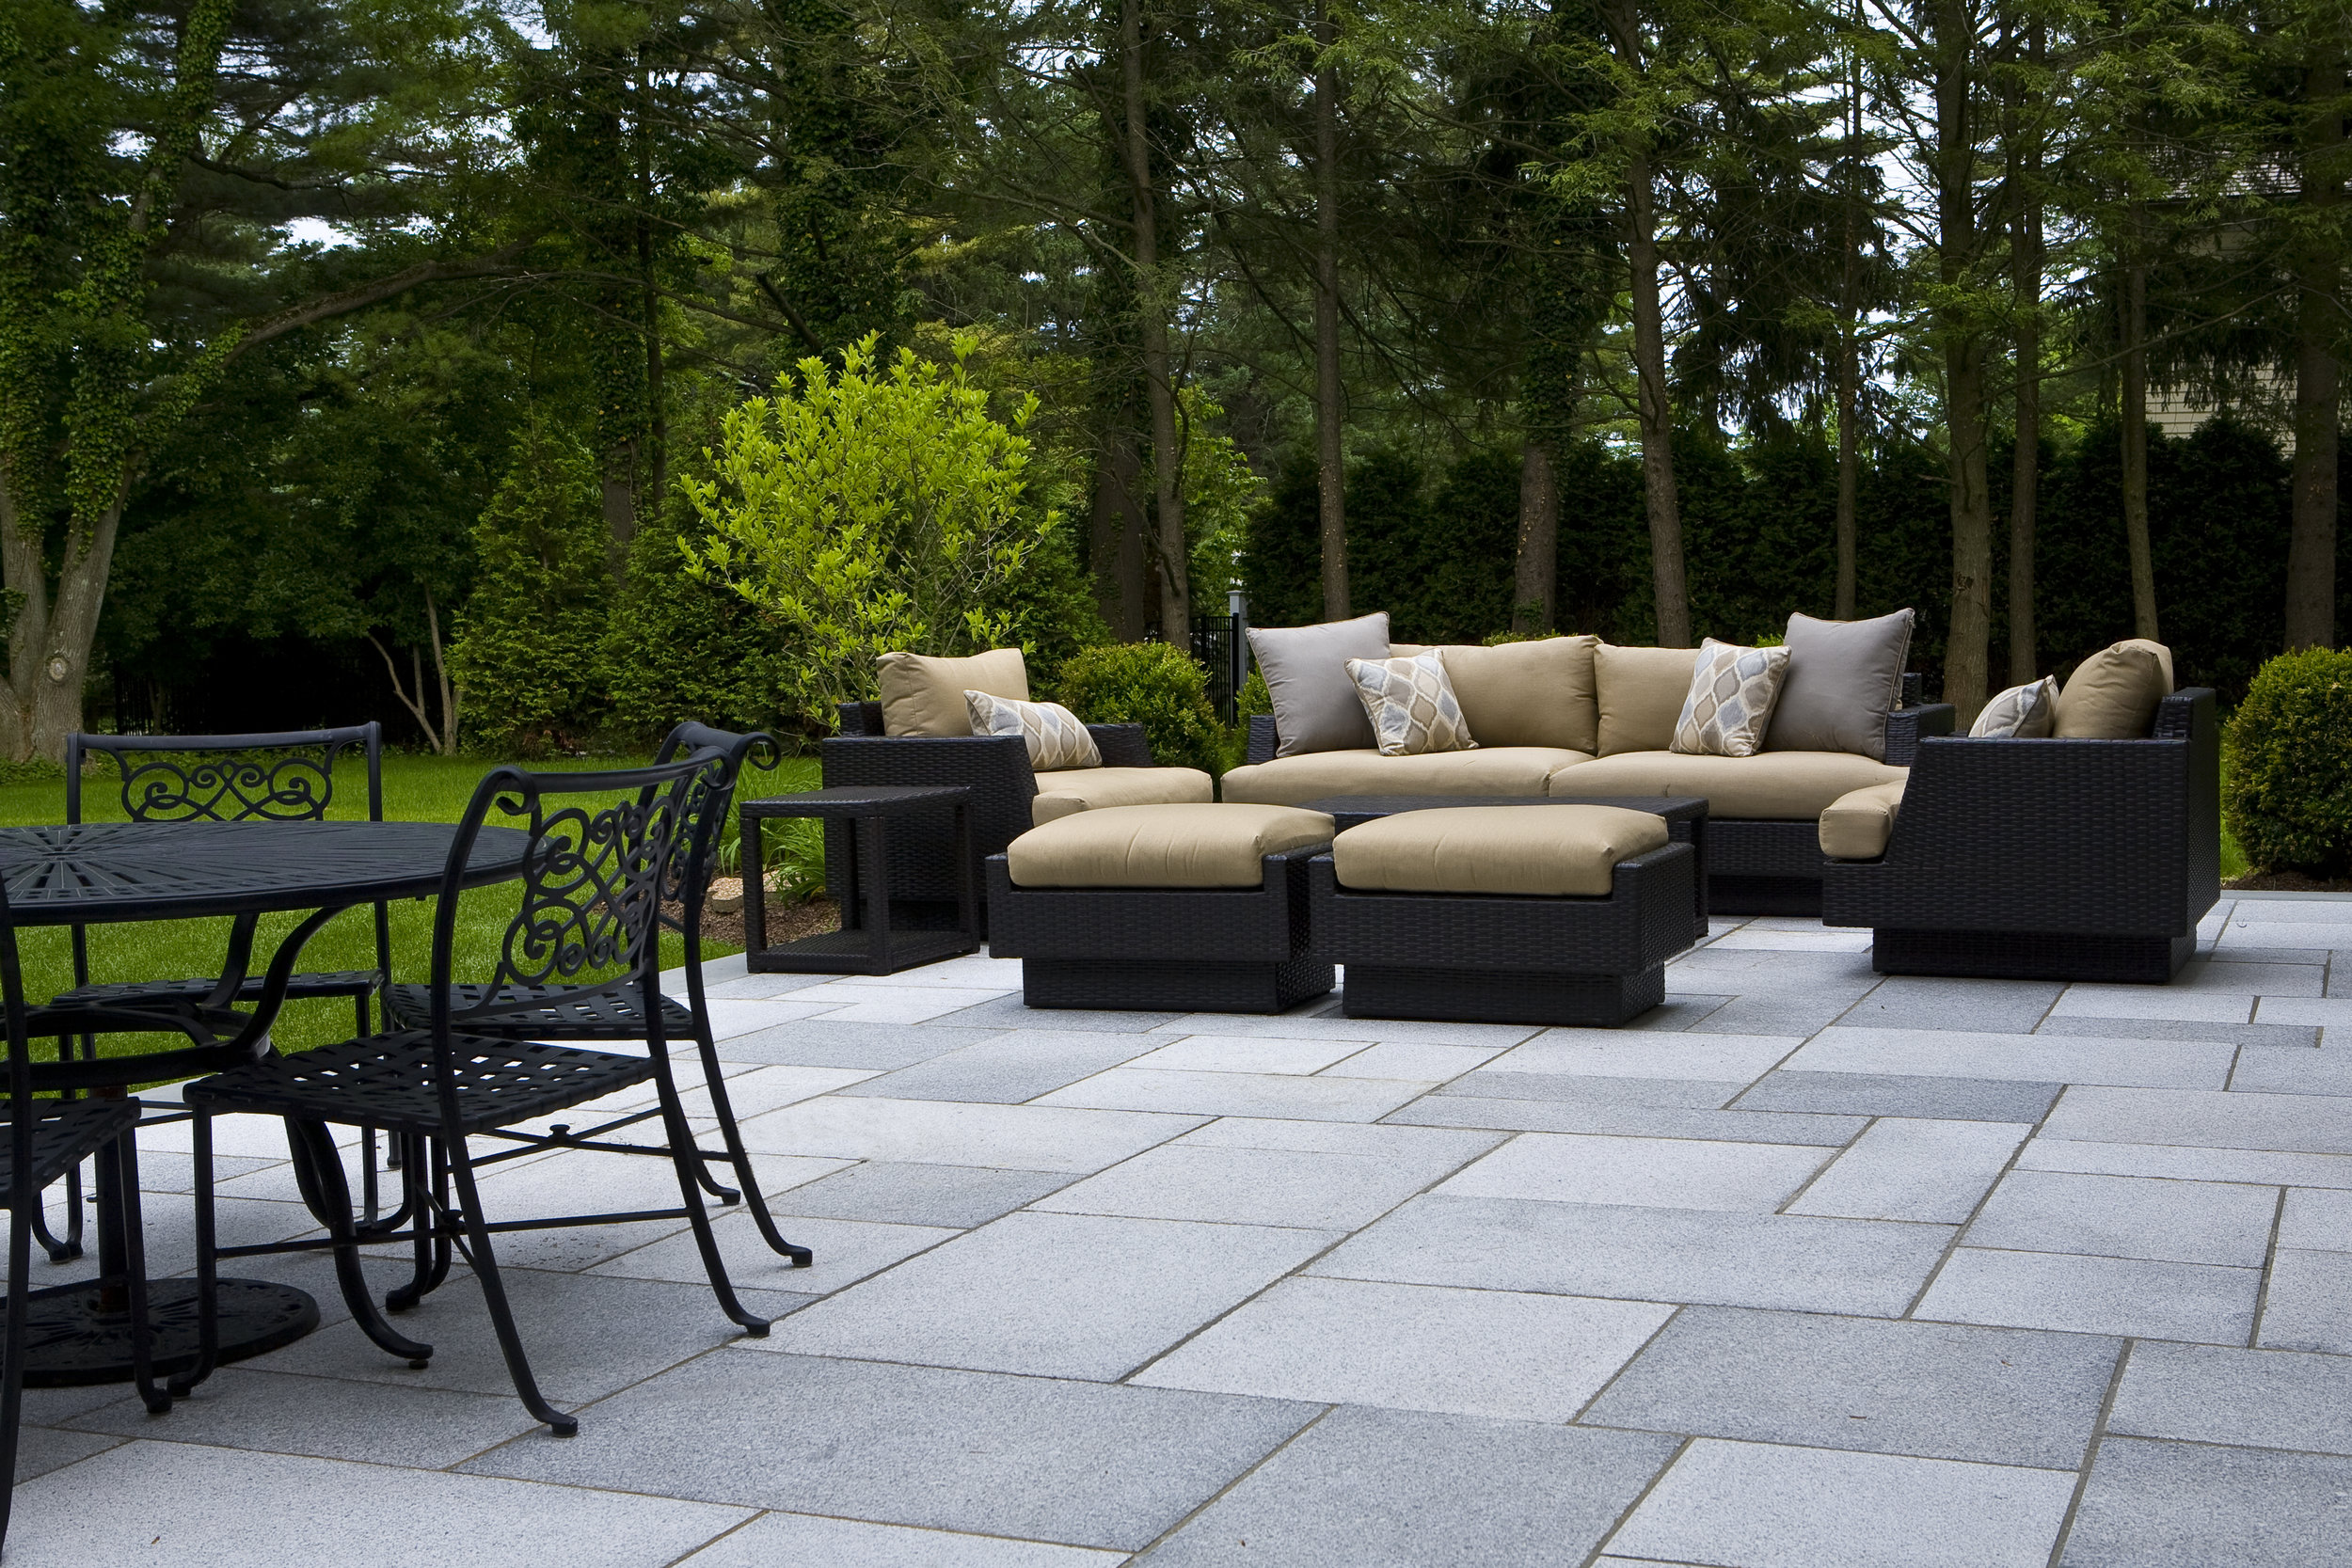 MATERIALS USED: GUILFORD GREY GRANITE